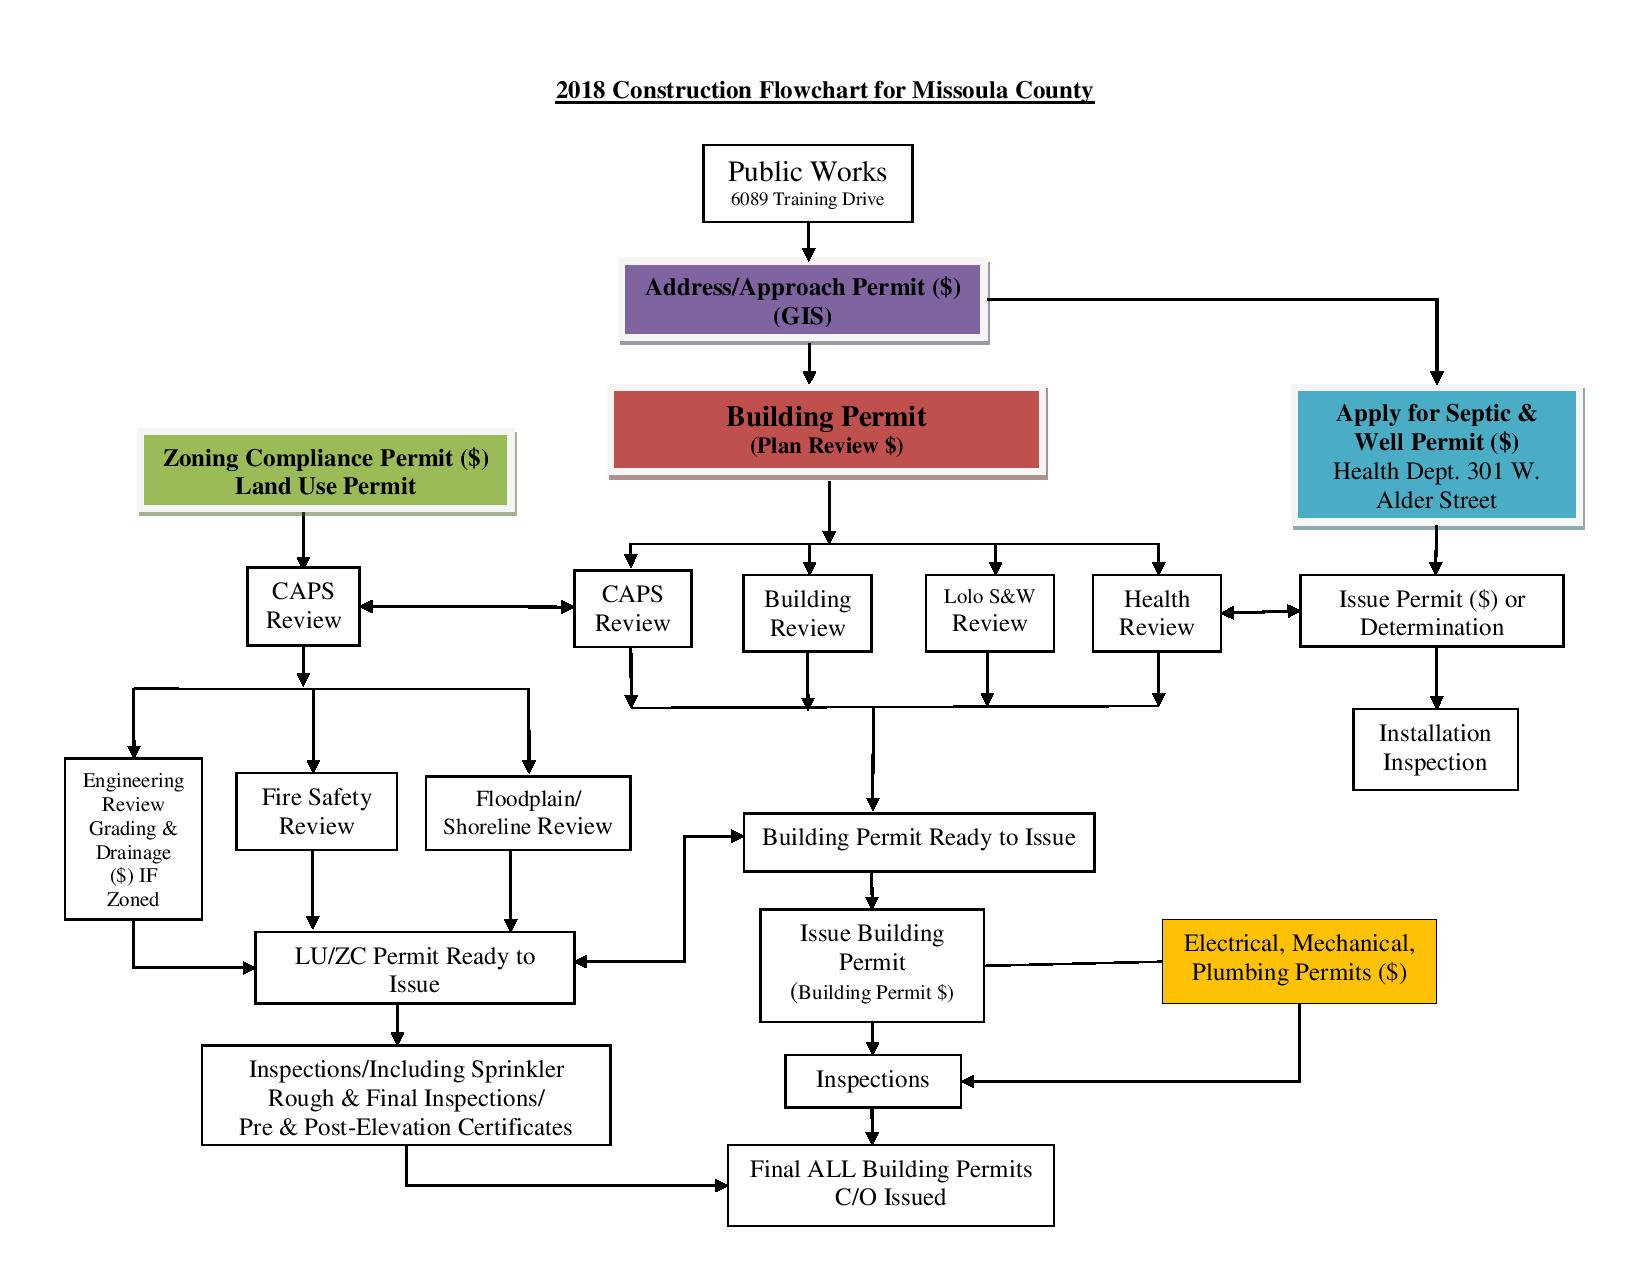 Permitting process flowchart missoula county mt for Flowchart for building a house